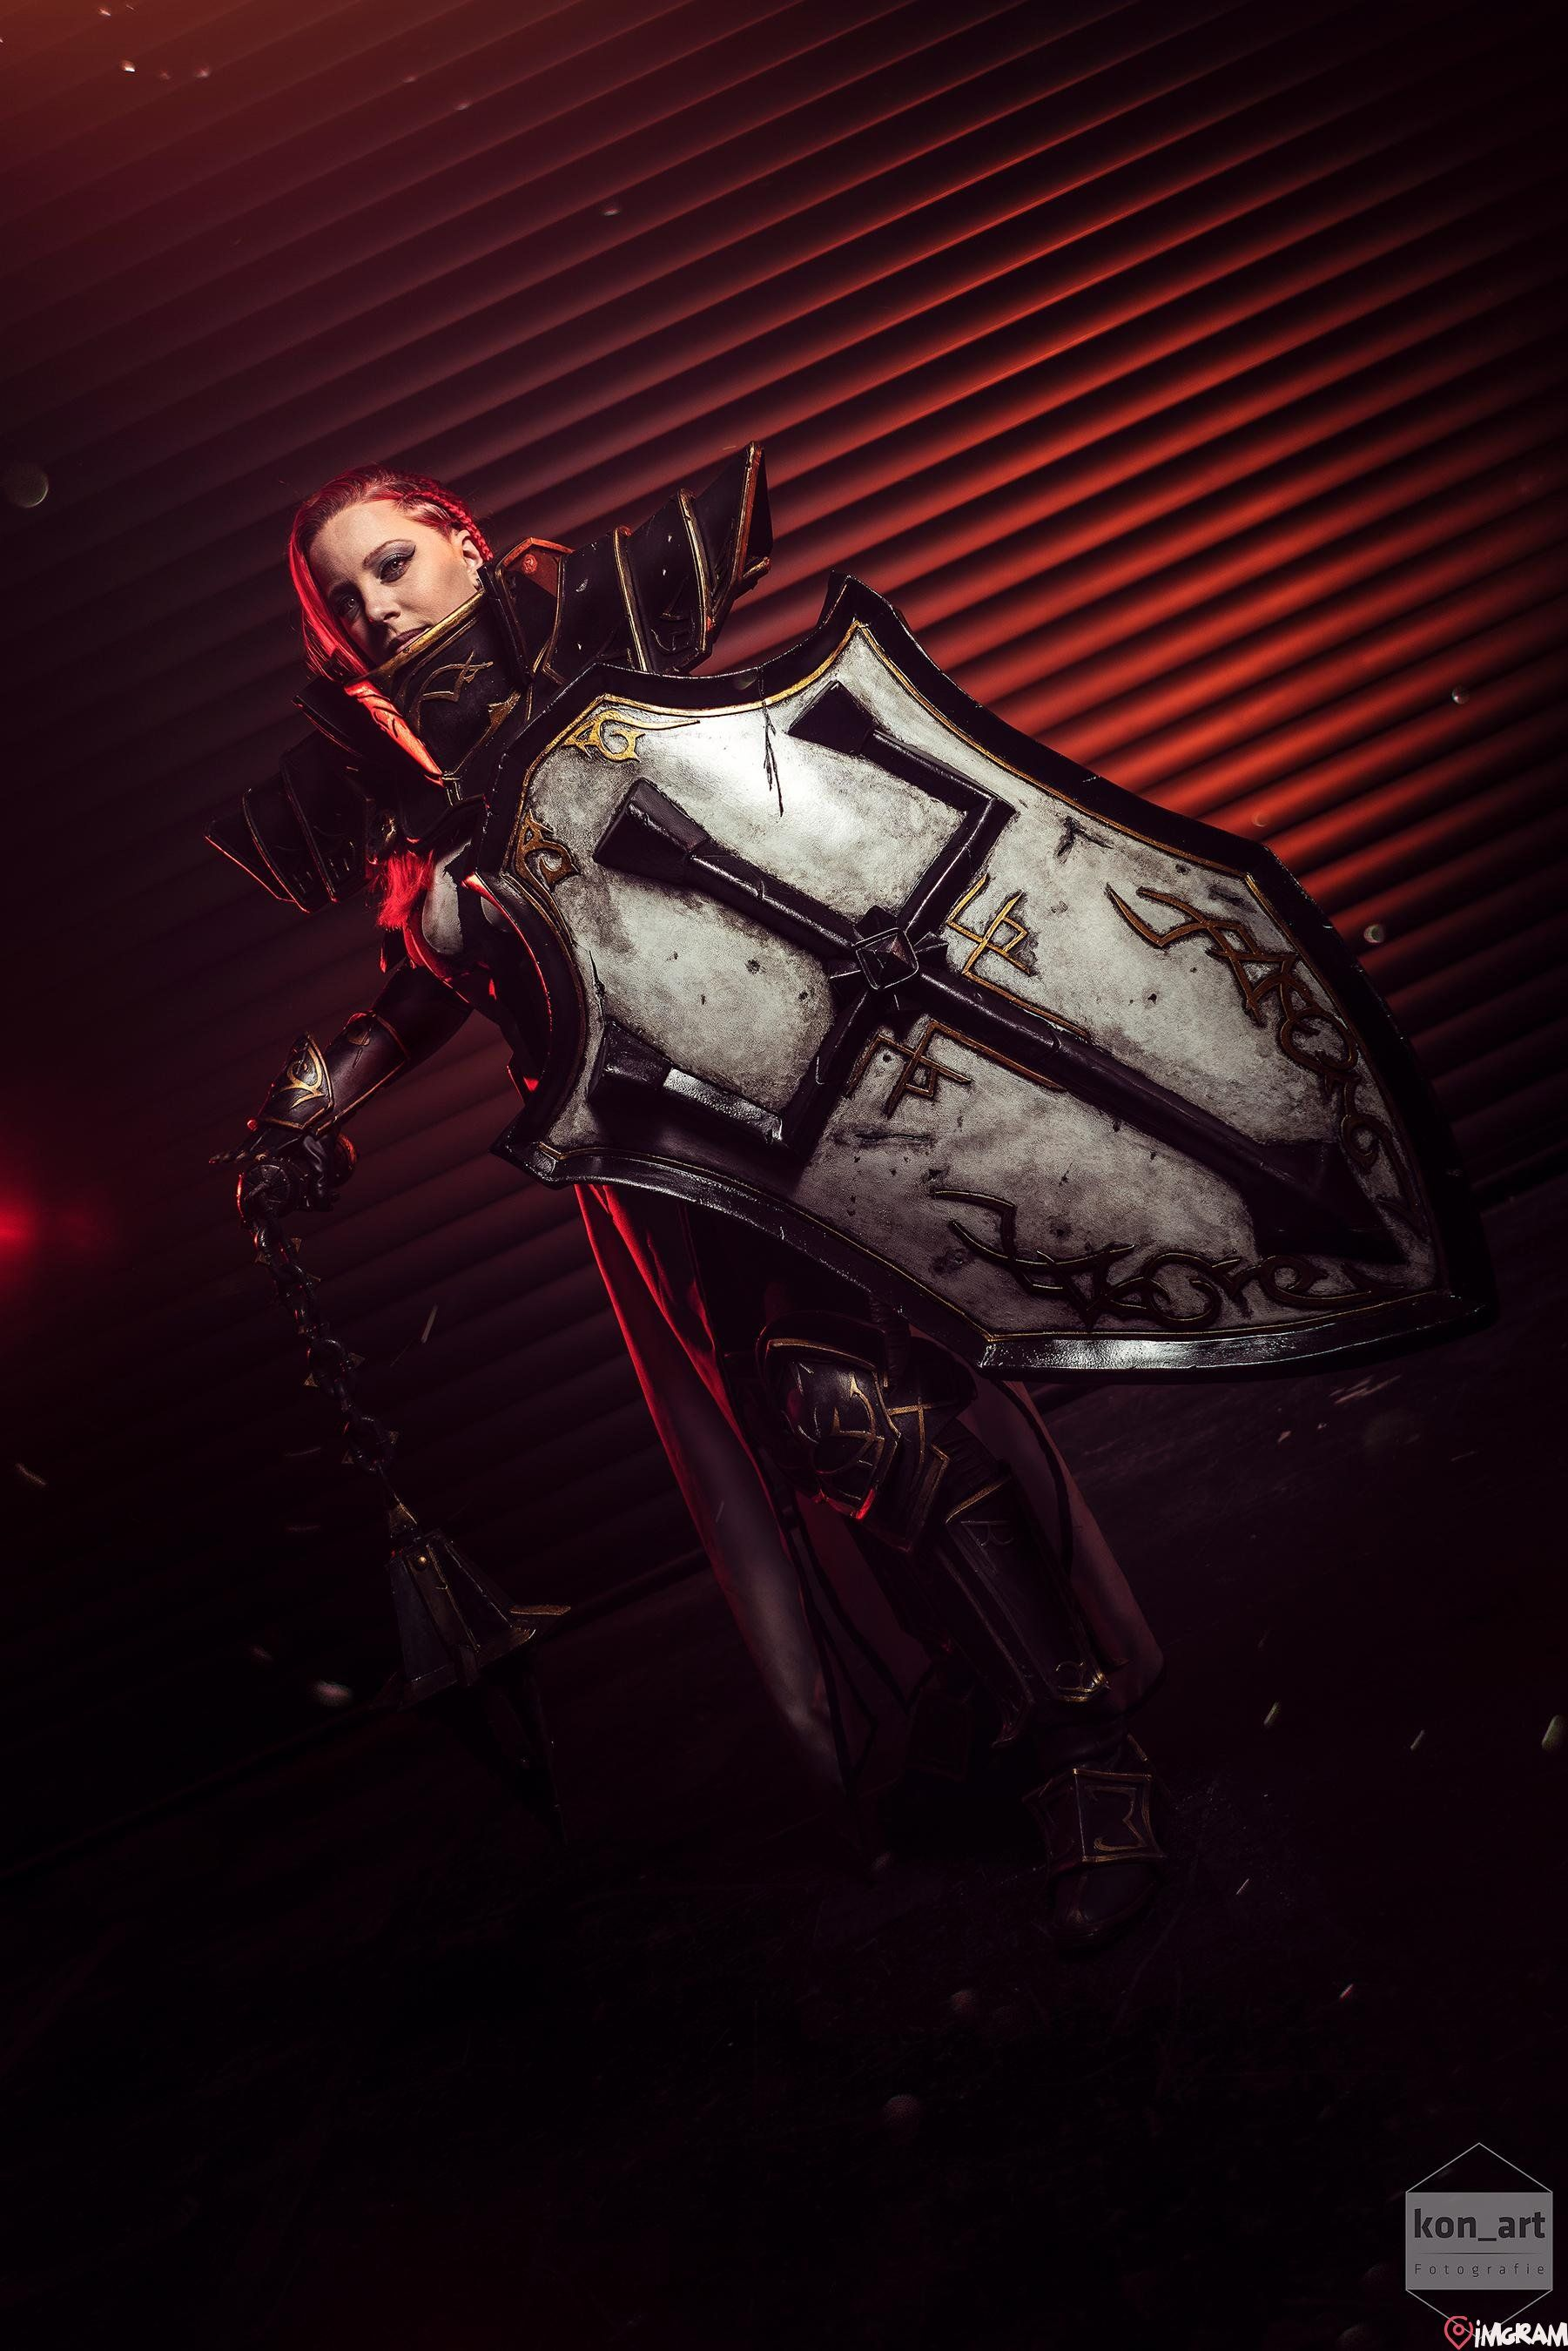 My Crusader Johanna Build Still One Of My Favourite Builds Photo By Kon Art Live Picture Crusades Photo Items, runes, skill order, and summoner spells. pinterest